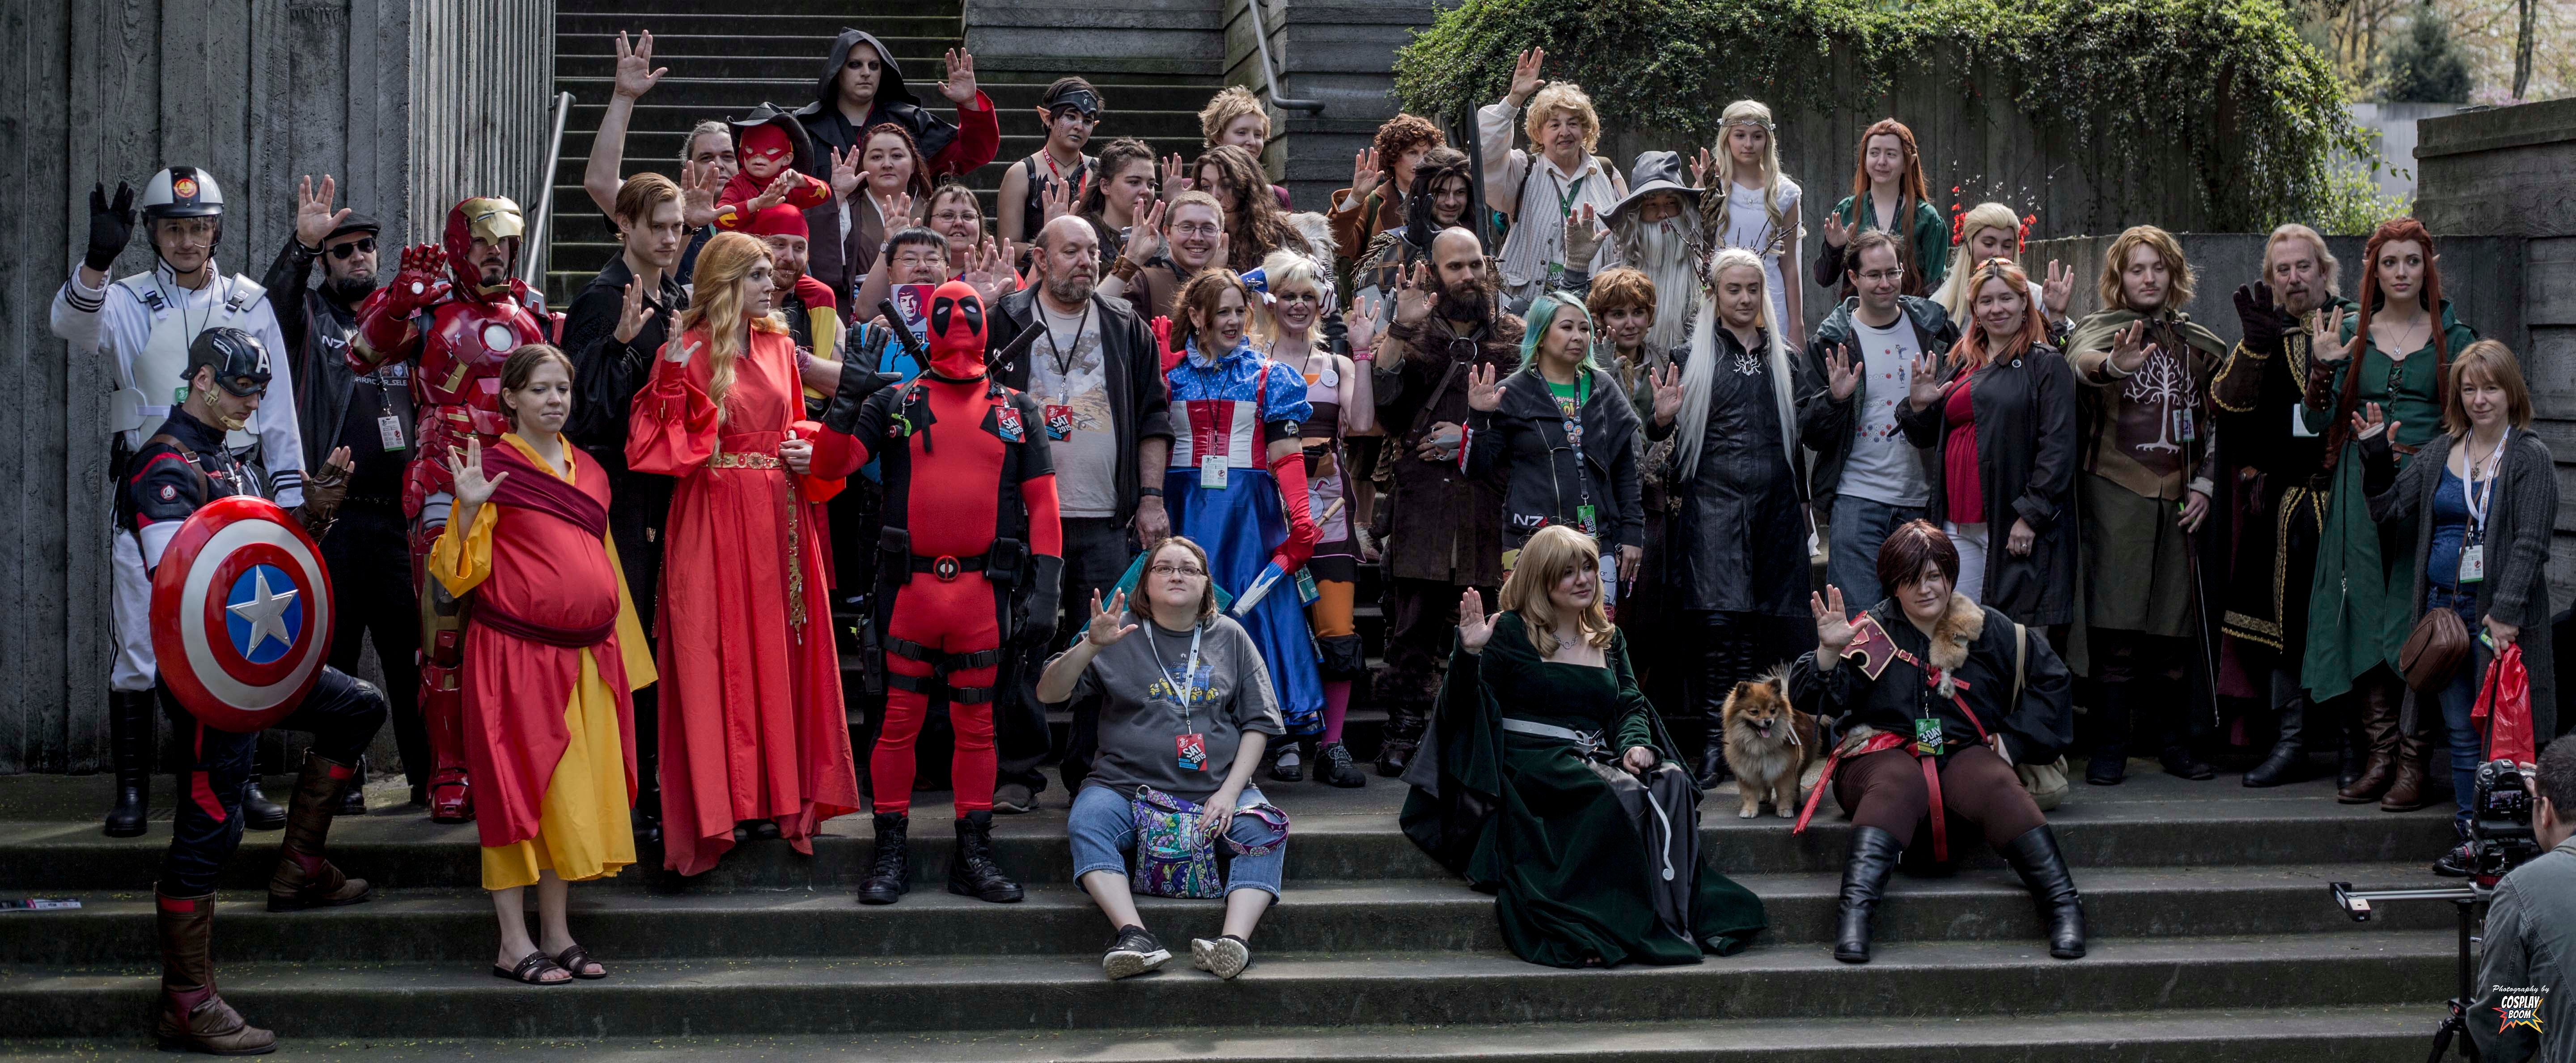 Iron Man's Best Friend Ultron, Chappie Cosplay and a Whole Lot of Halo